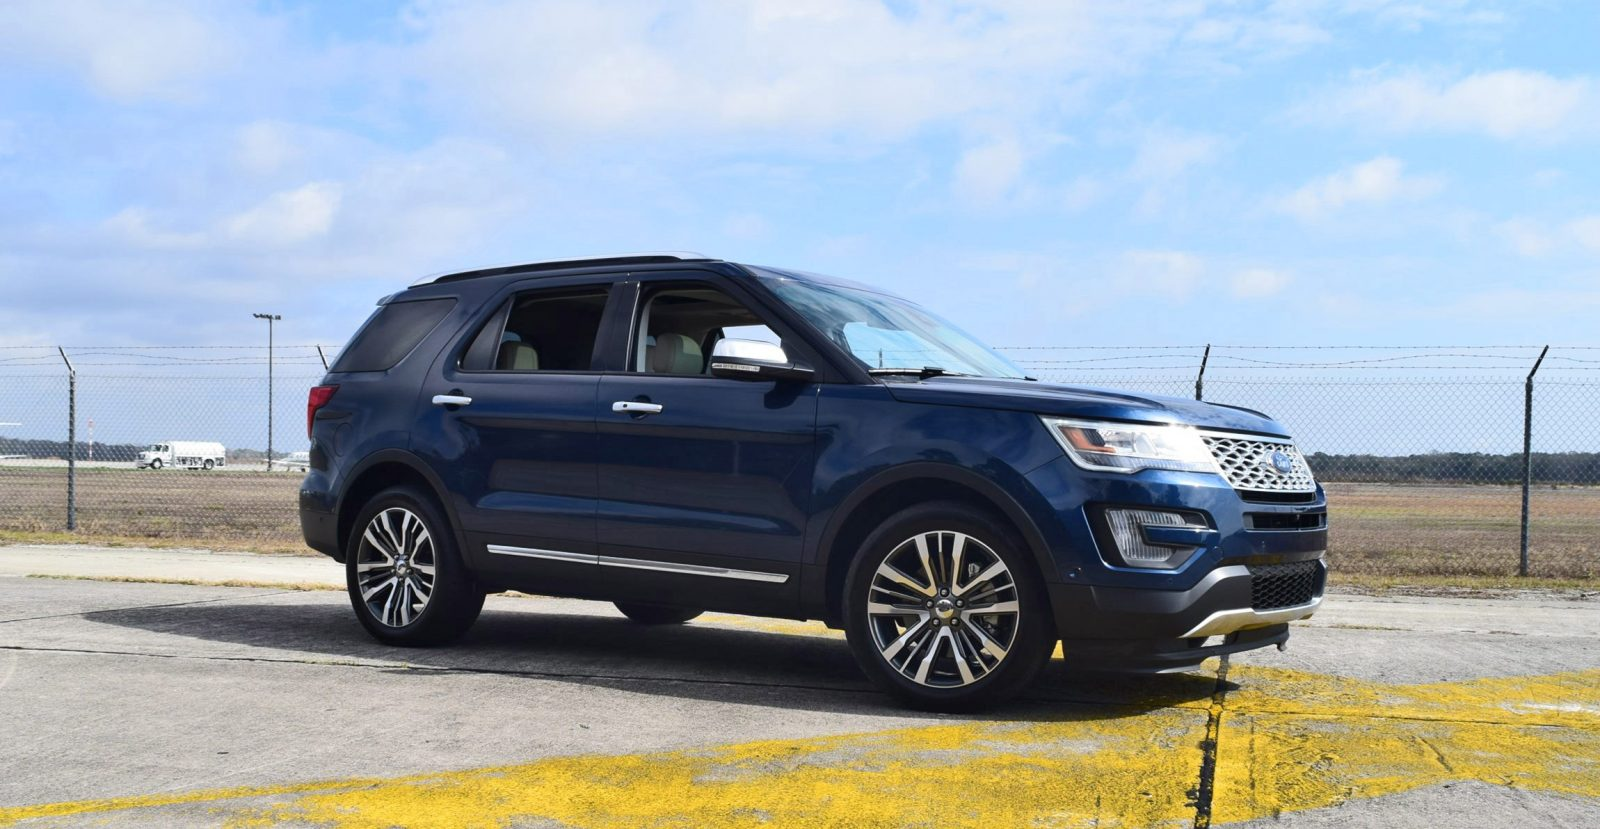 2017 ford explorer platinum 4x4 hd road test review. Black Bedroom Furniture Sets. Home Design Ideas